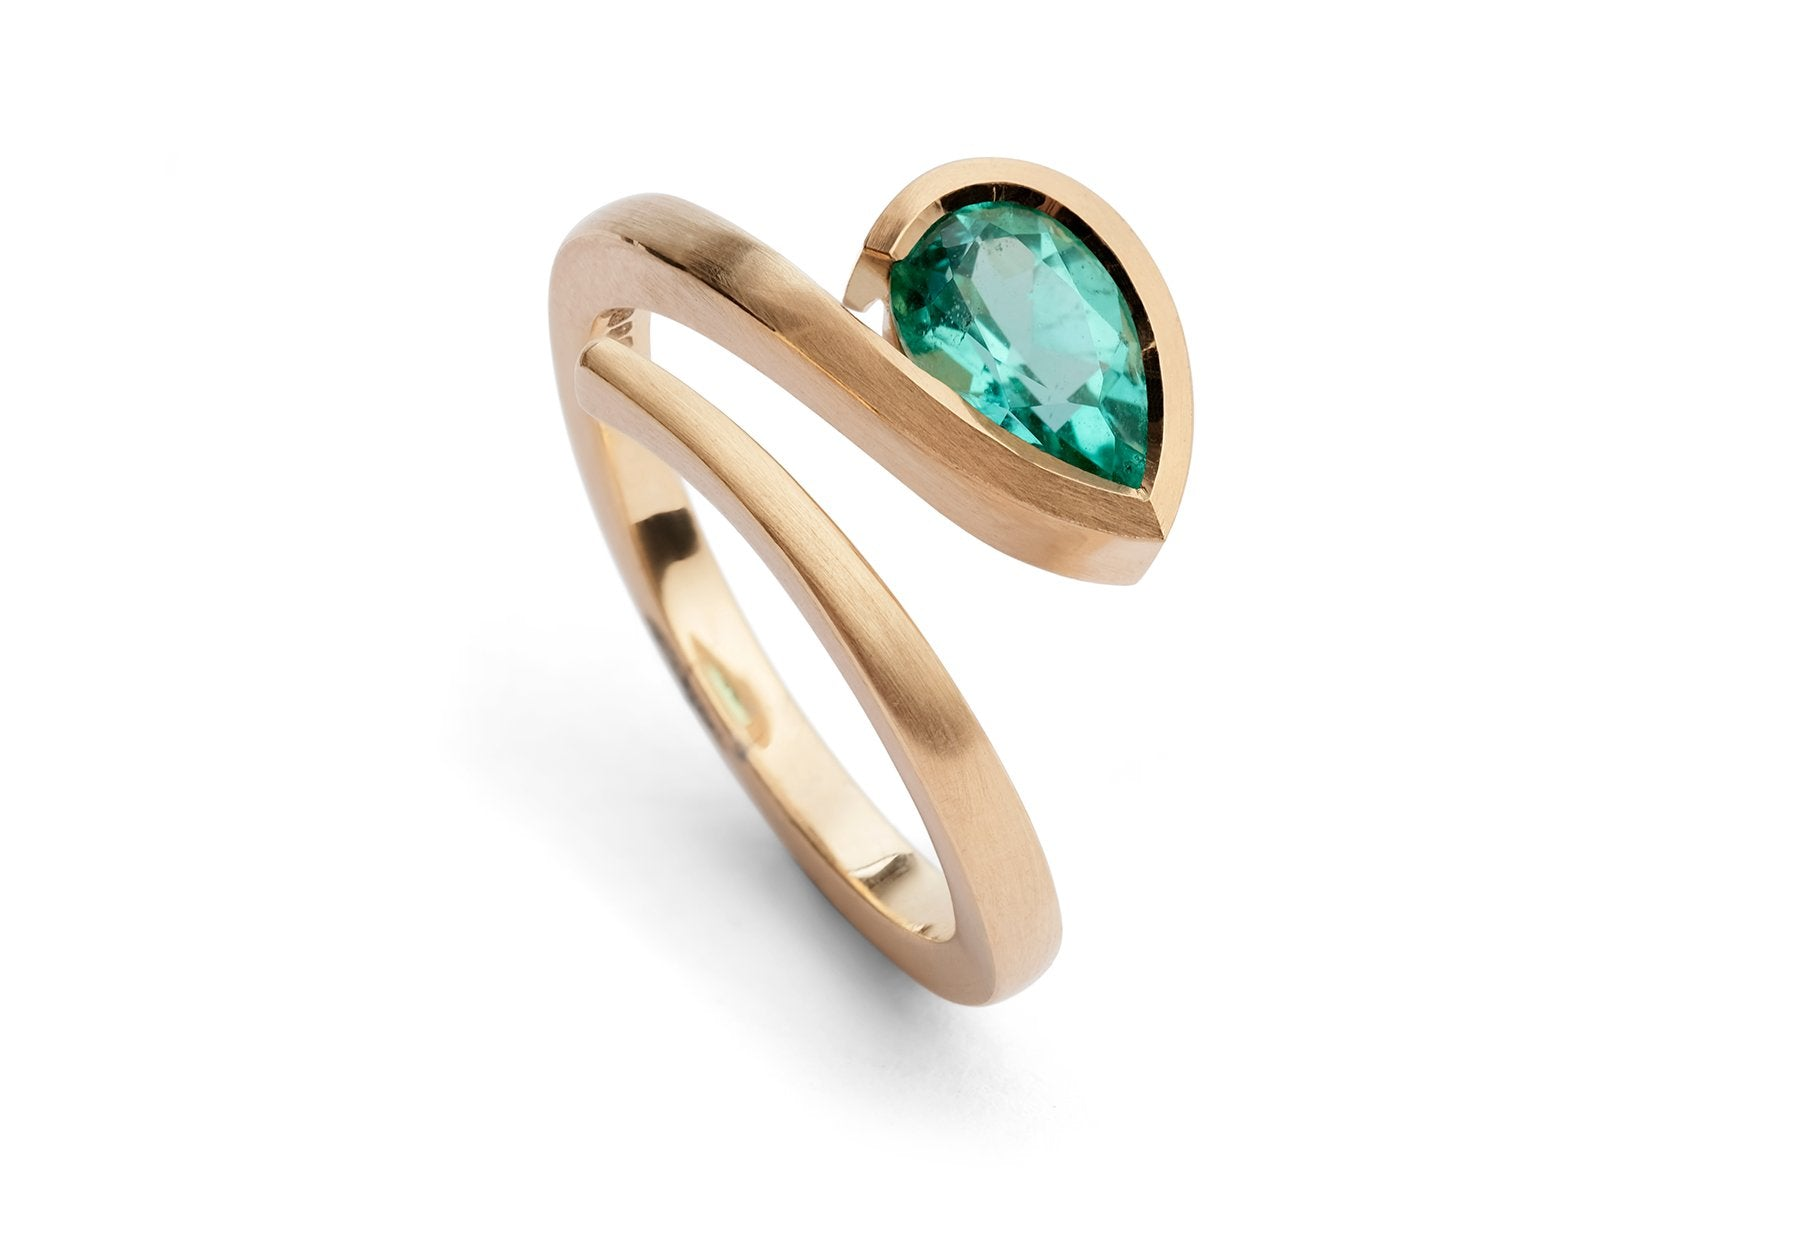 Forged rose gold and pear paraiba tourmaline Twist engagement ring